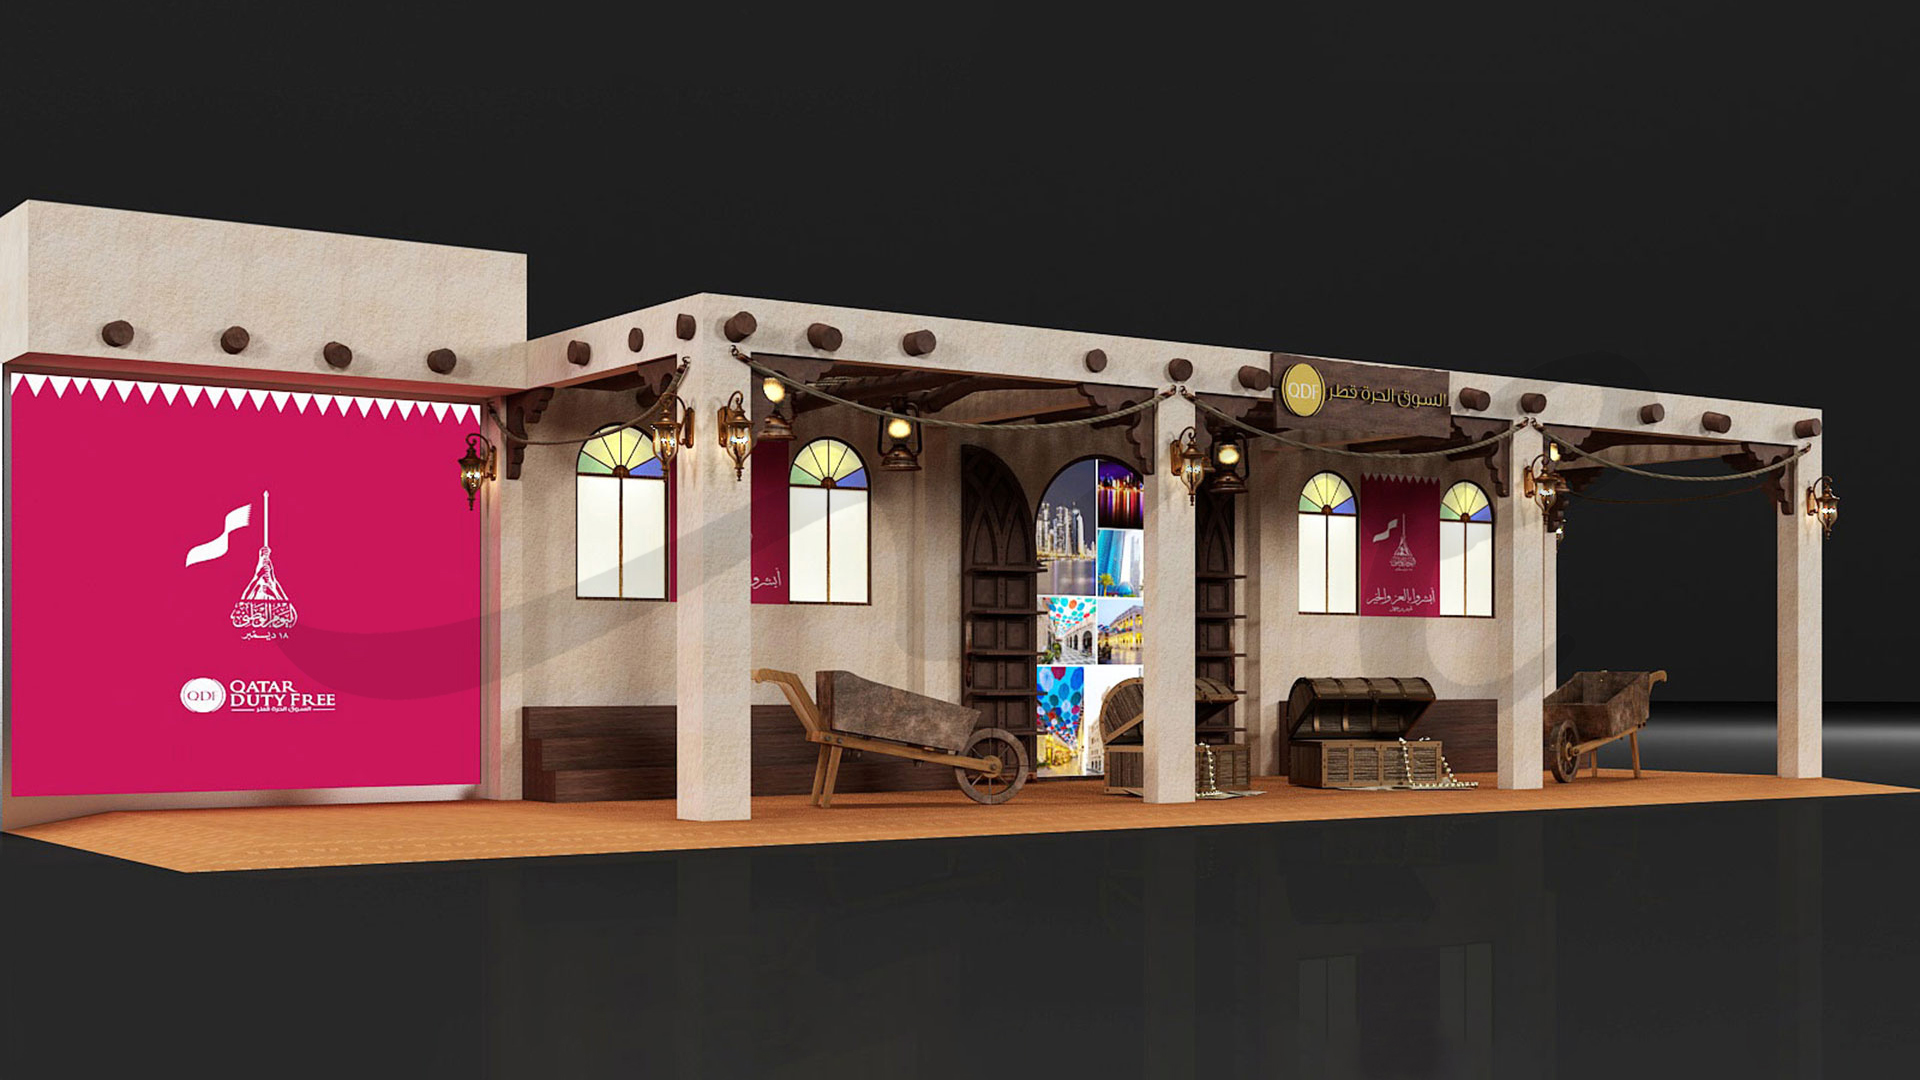 3D Concept and Design of Qatar National Day 2018 Souq Stand for Qatar Duty Free produced by ME Visual